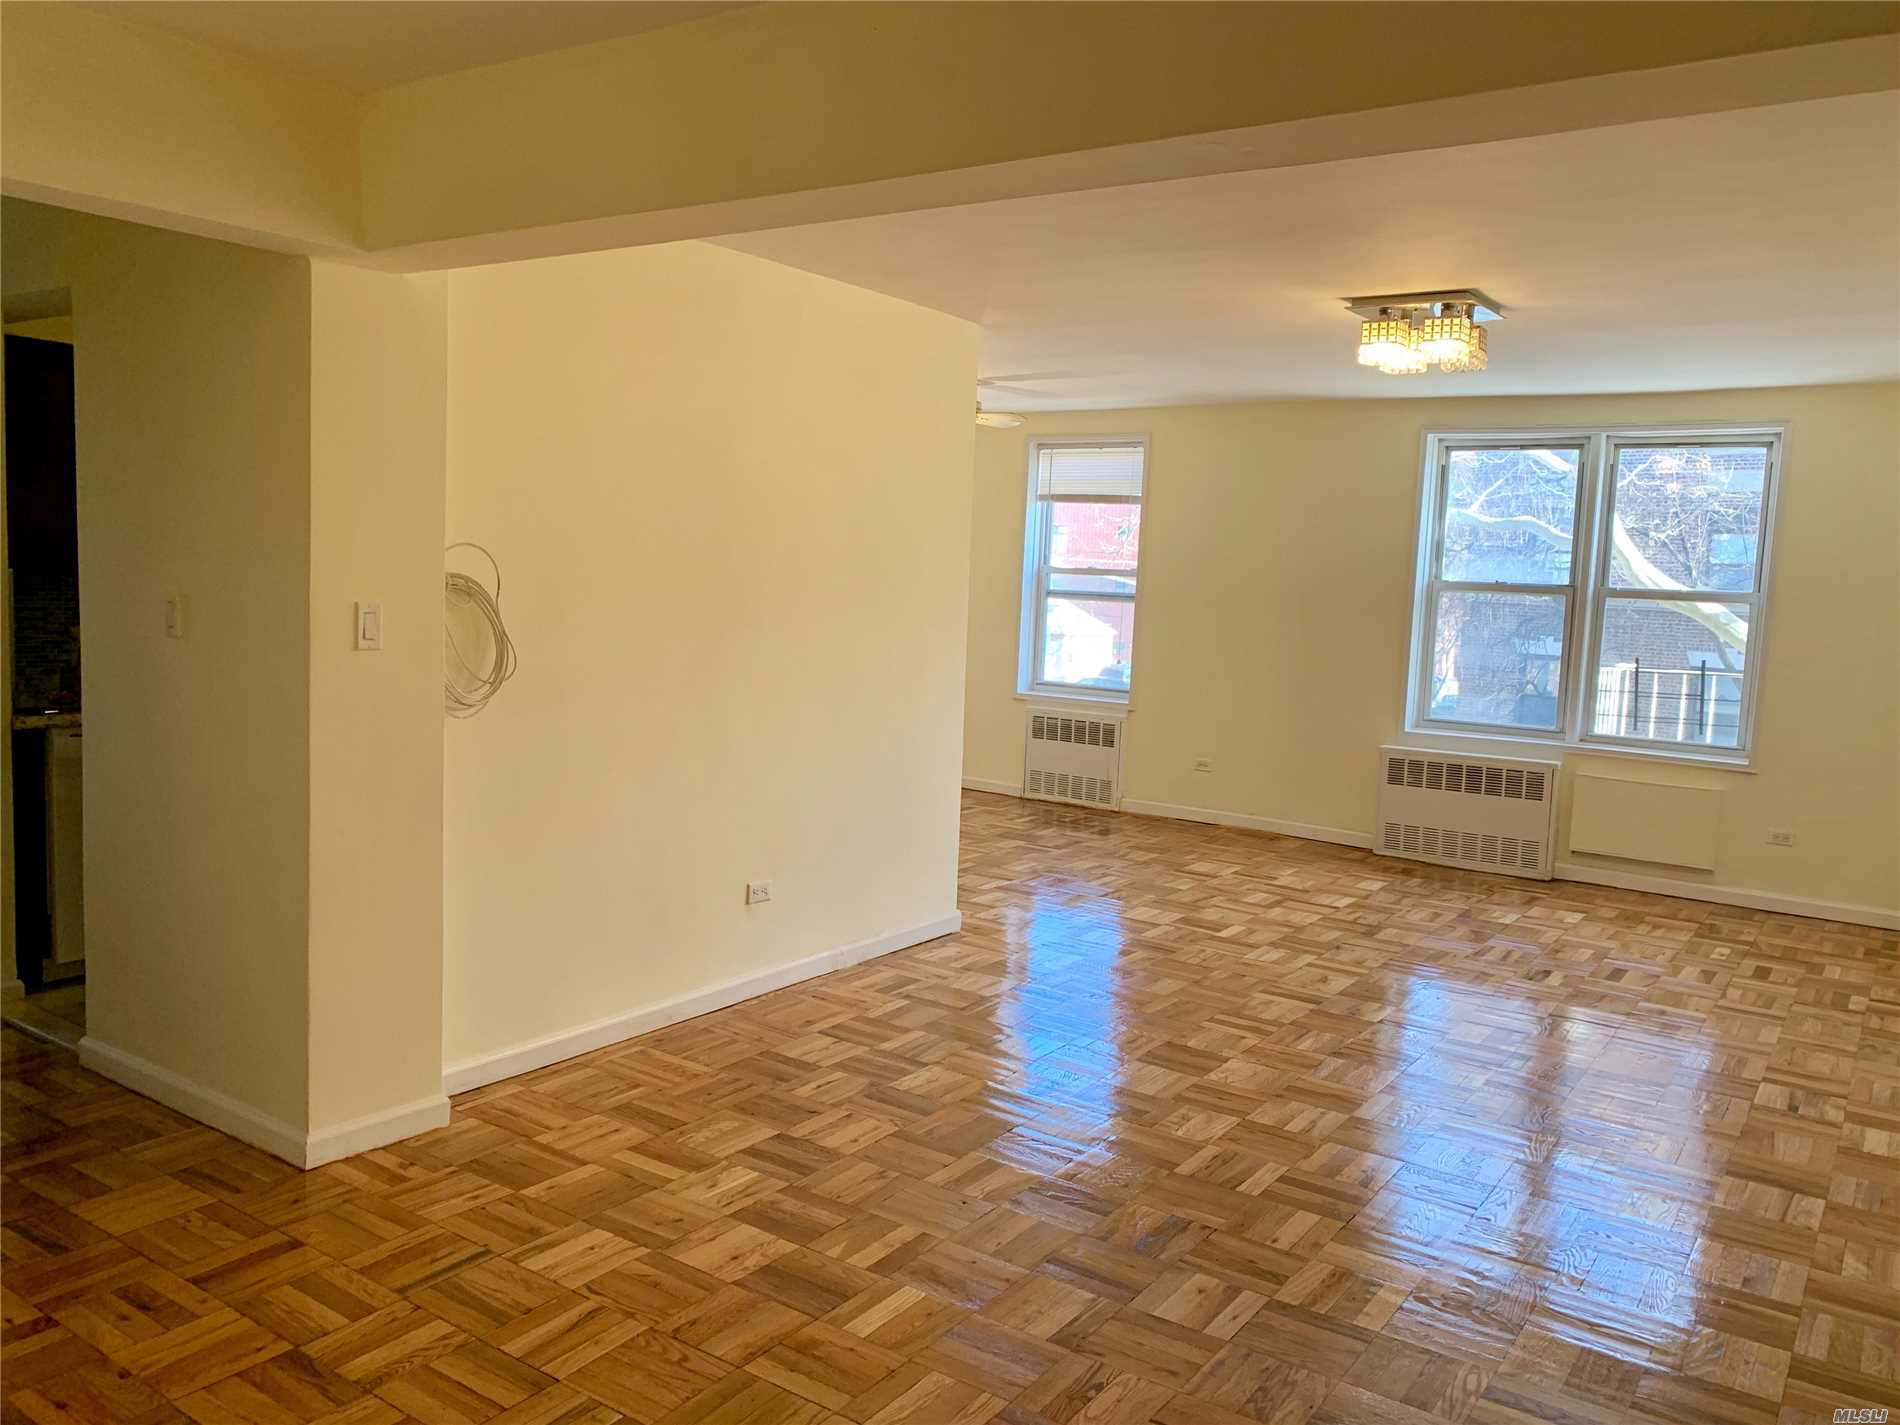 Sponsor Apartment(No Board Interview Required). Sunny & Spacious Apartment. Laundry Facility On Basement Level. In Prime Location Of Kew Gardens Walking Distance To Lirr, Shopping, Entertainment, And Airports. Act Fast! Sorry No Pets.